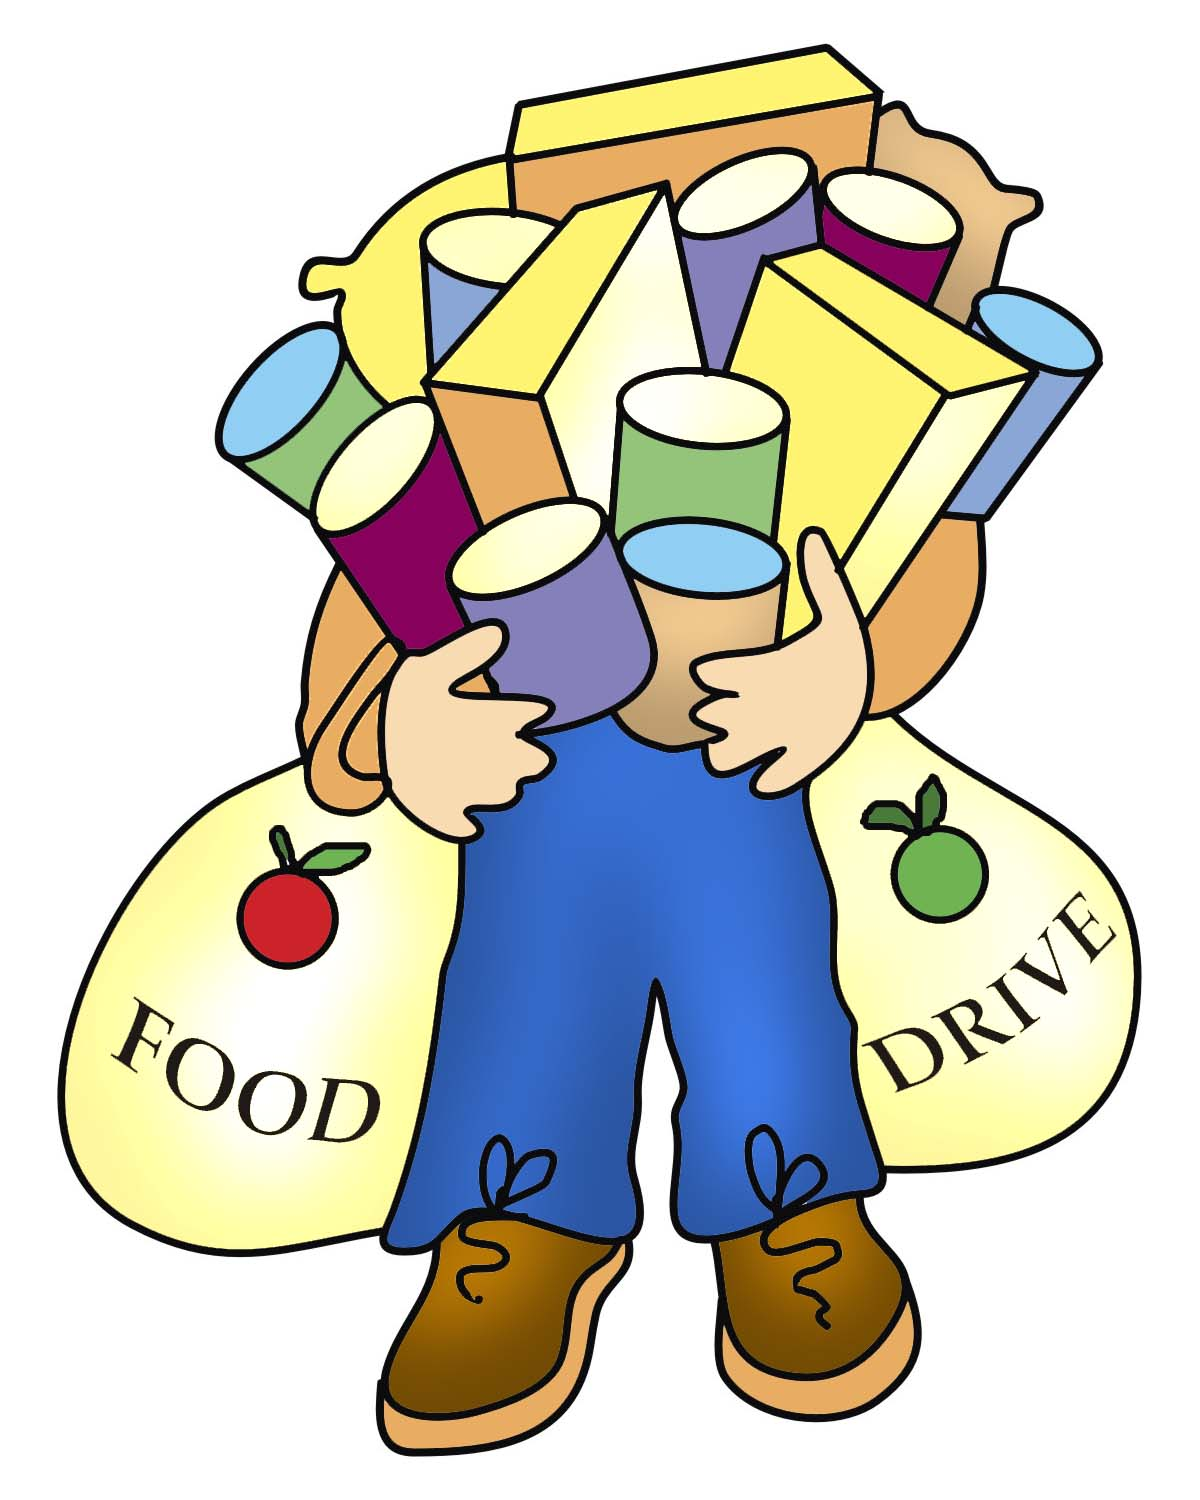 Christmas Food Donations Clipart - Clipart Kid